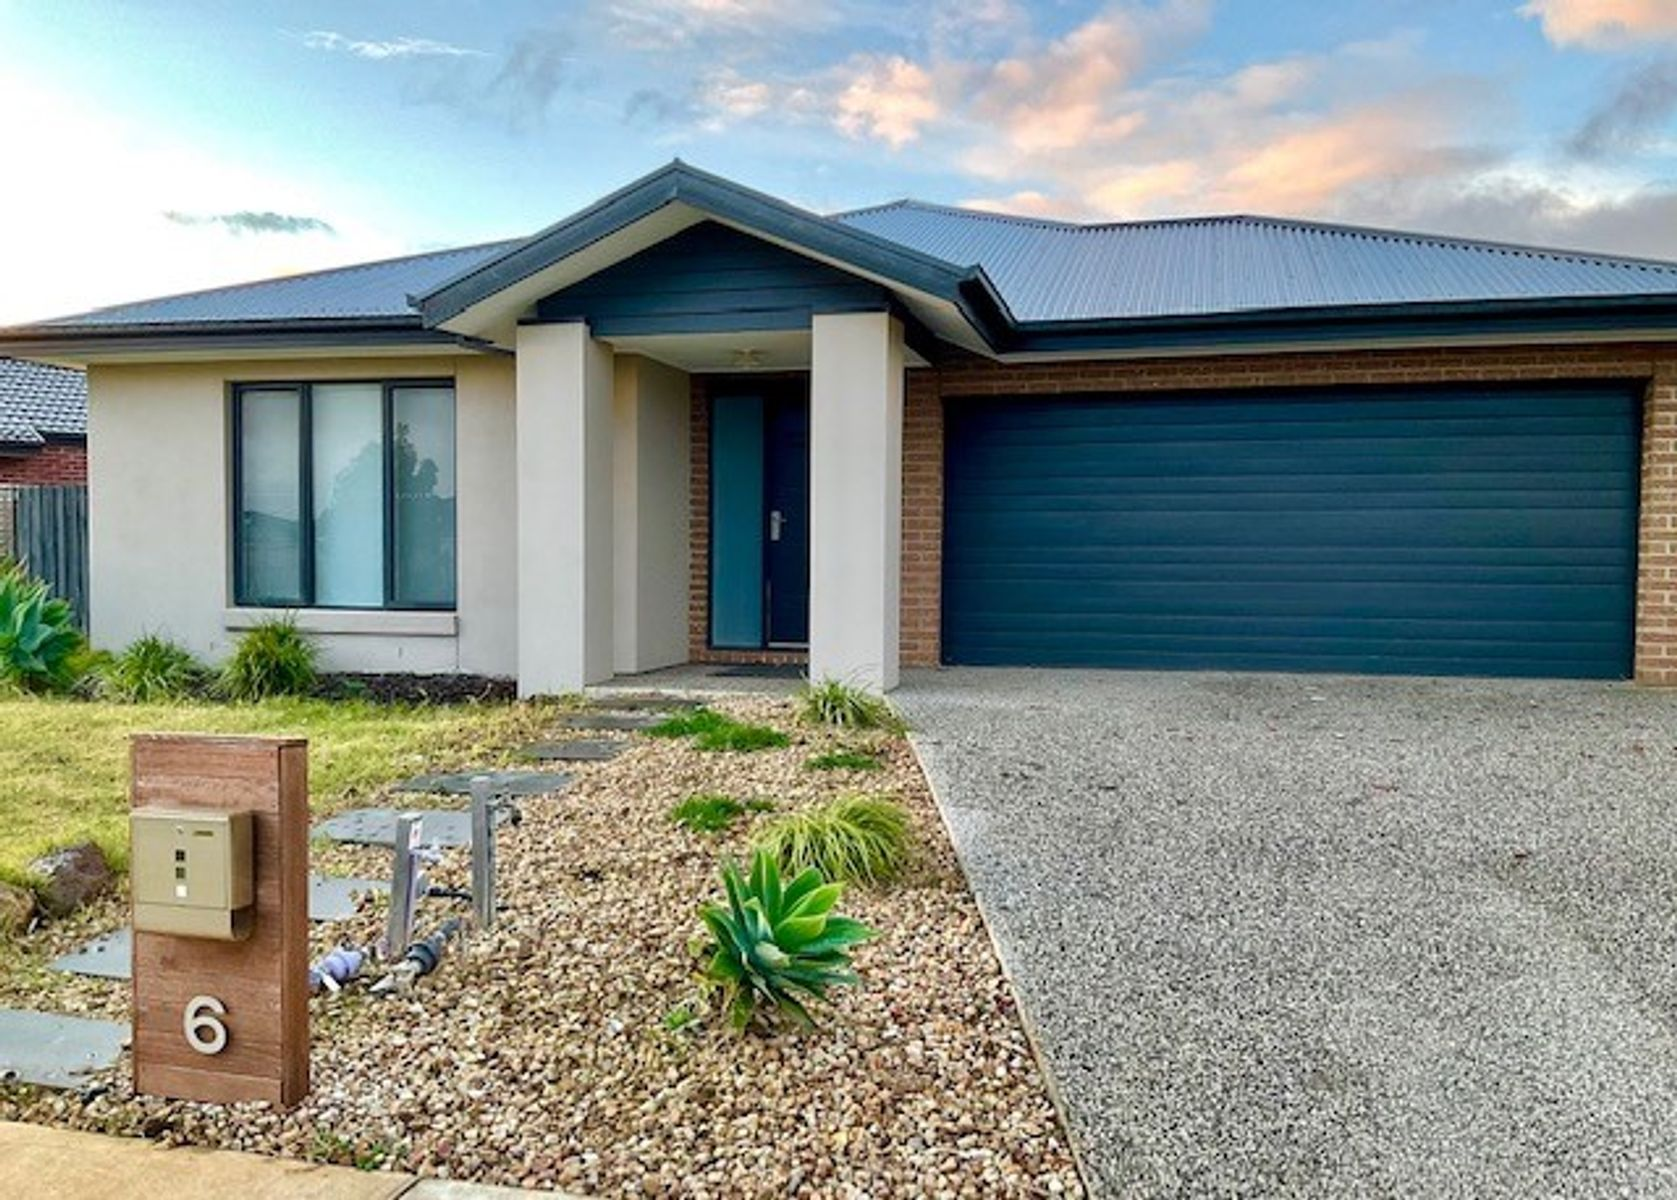 6 Pascolo Way, Wyndham Vale, VIC 3024